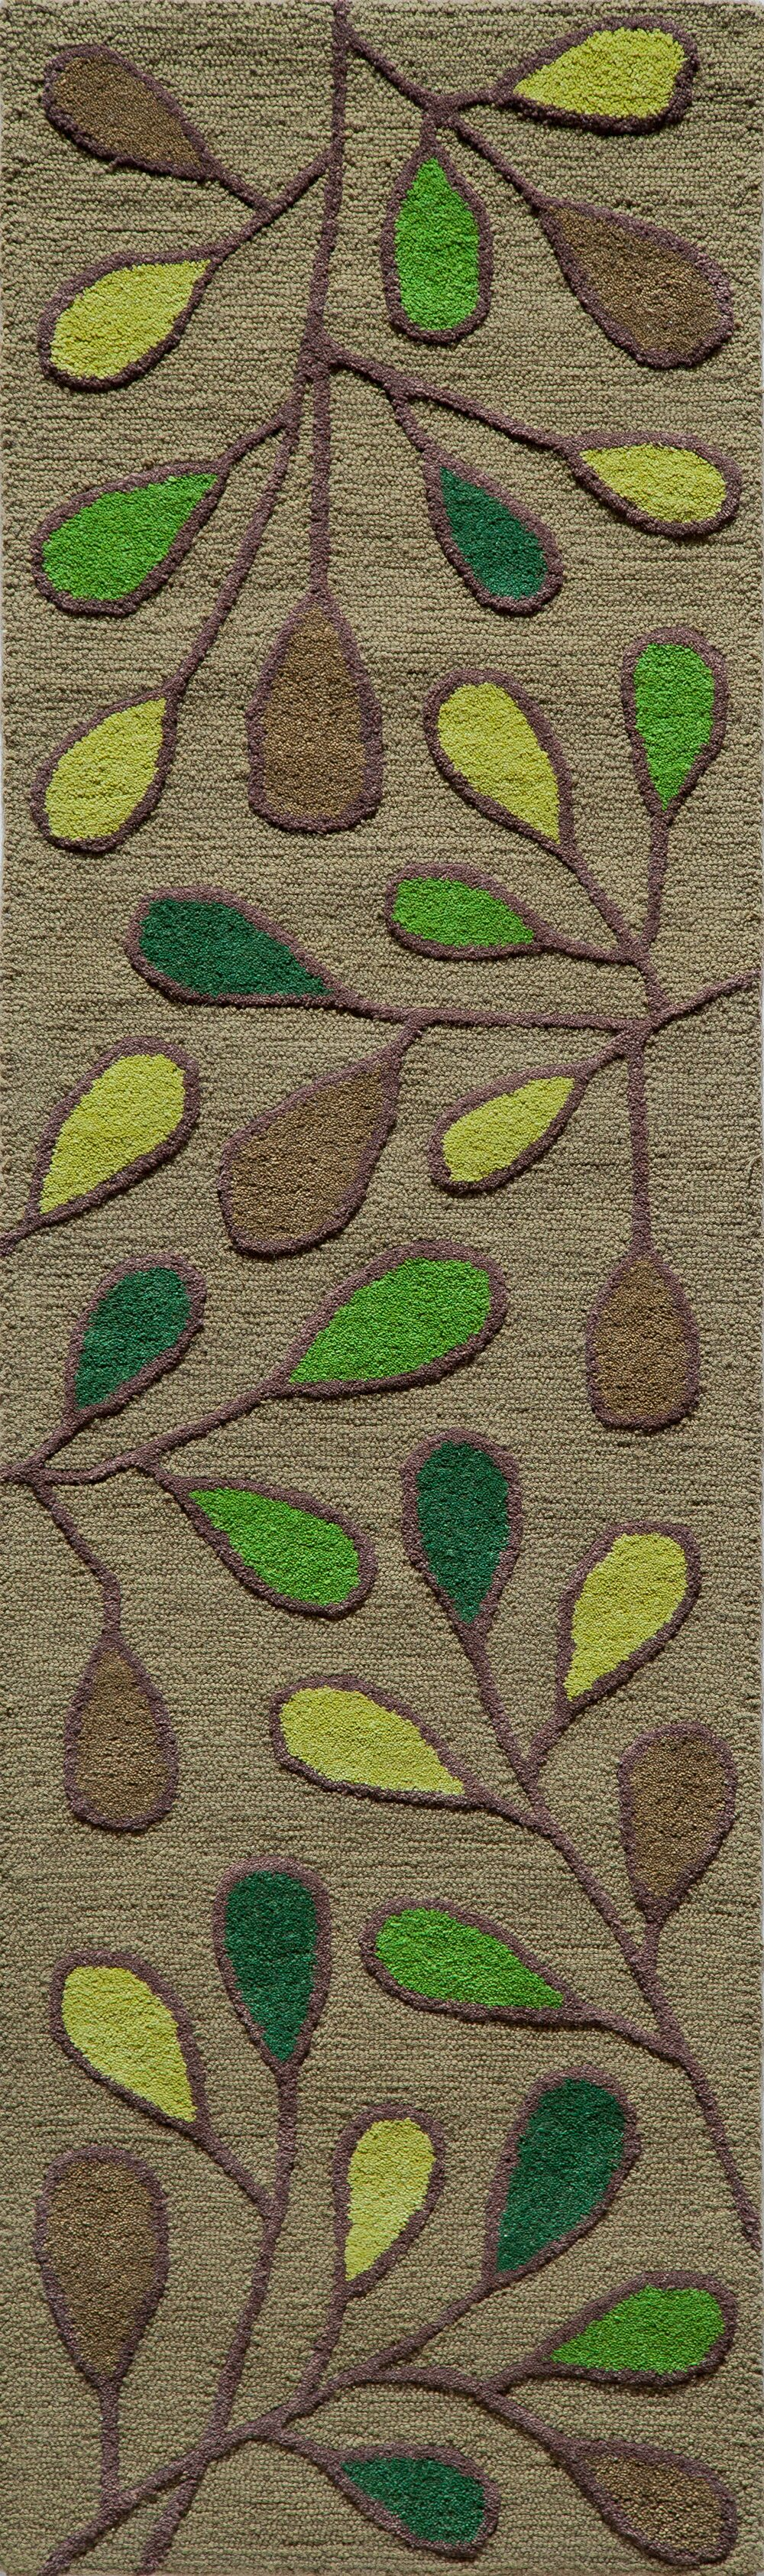 Coyan Hand-Tufted Green Area Rug Rug Size: Rectangle 7'6